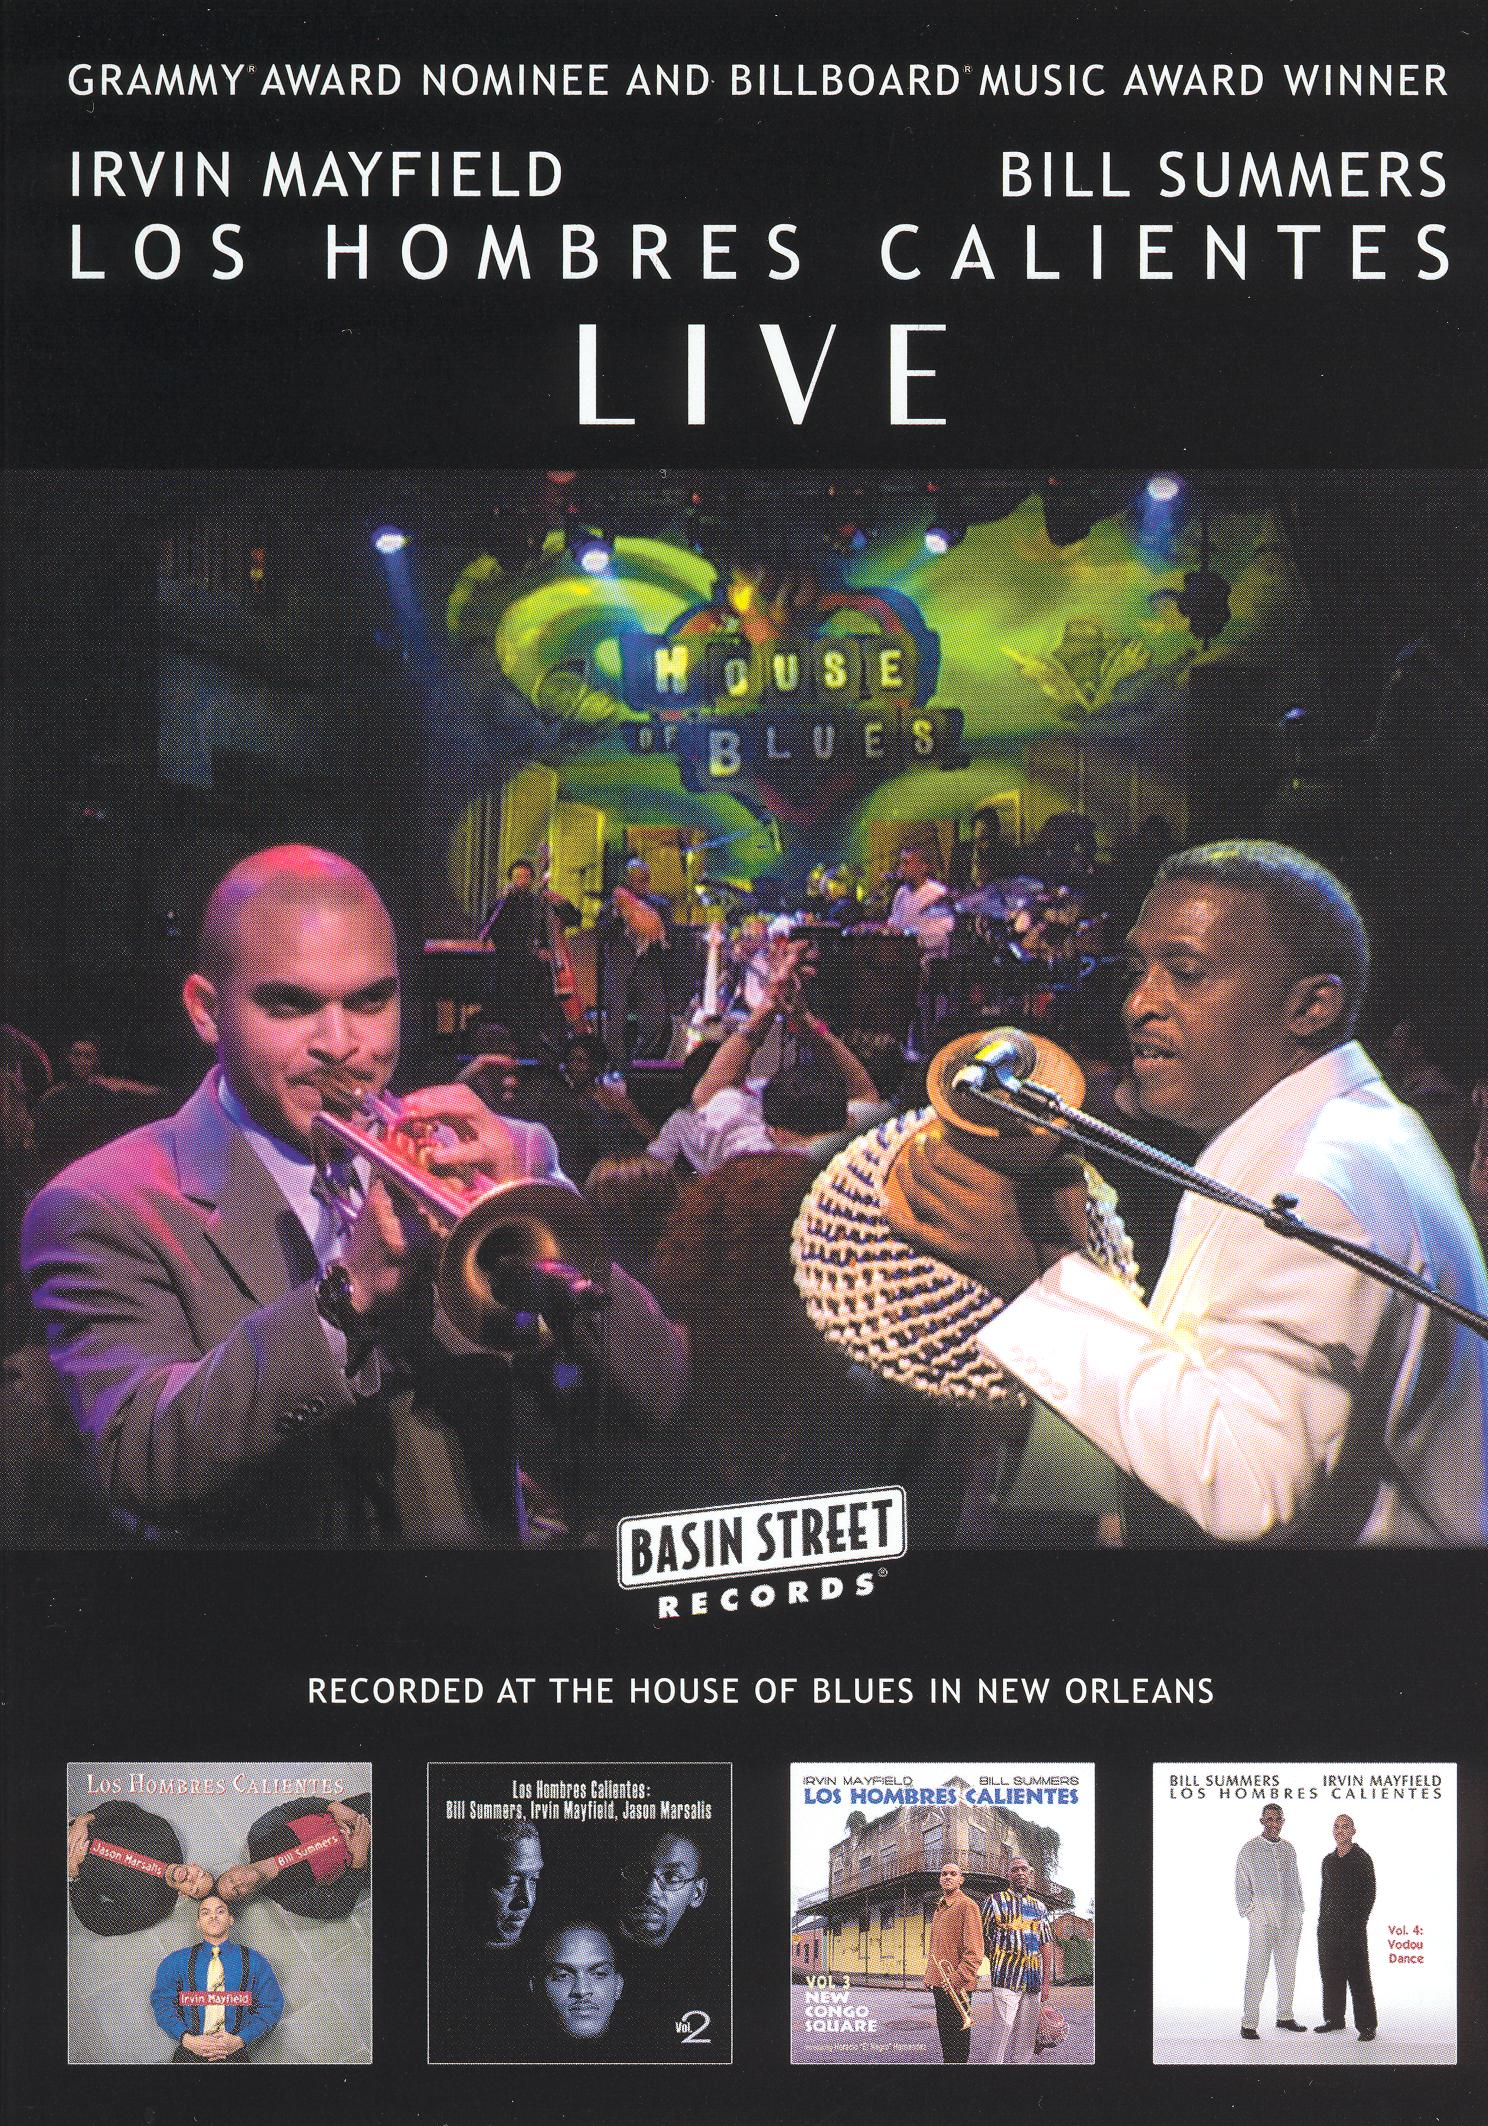 Los Hombres Calientes: Live at the House of Blues